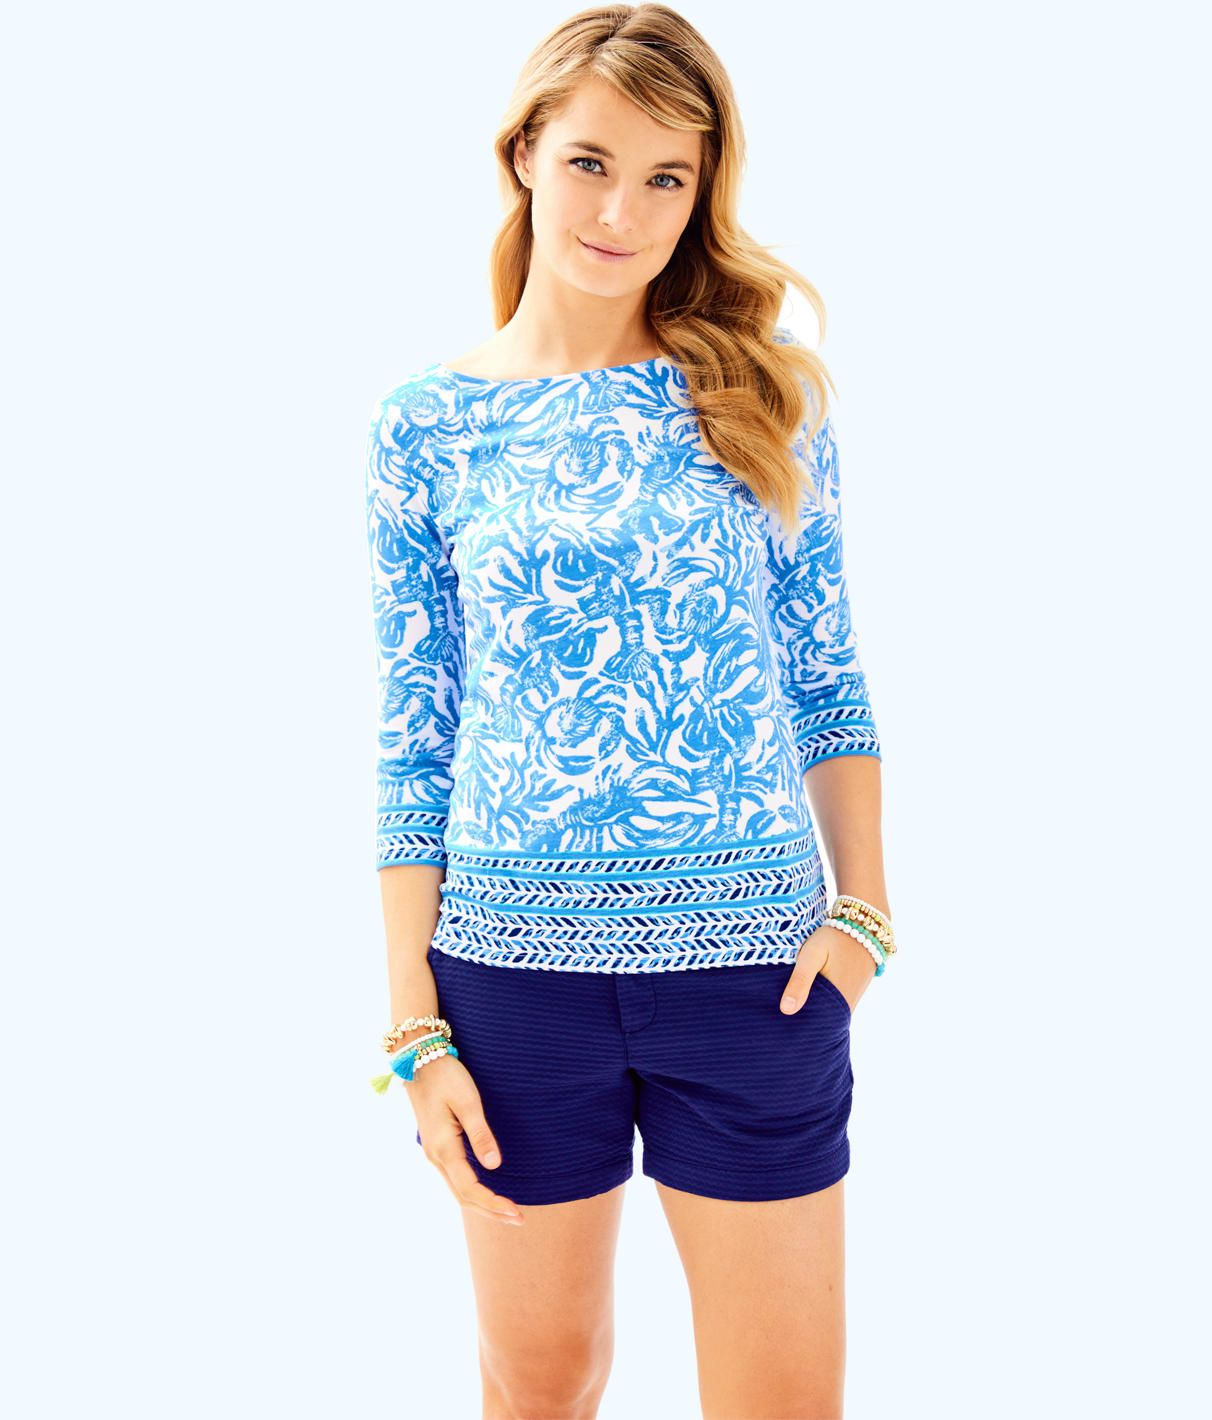 Lilly Pulitzer Lilly Pulitzer Womens Waverly Top